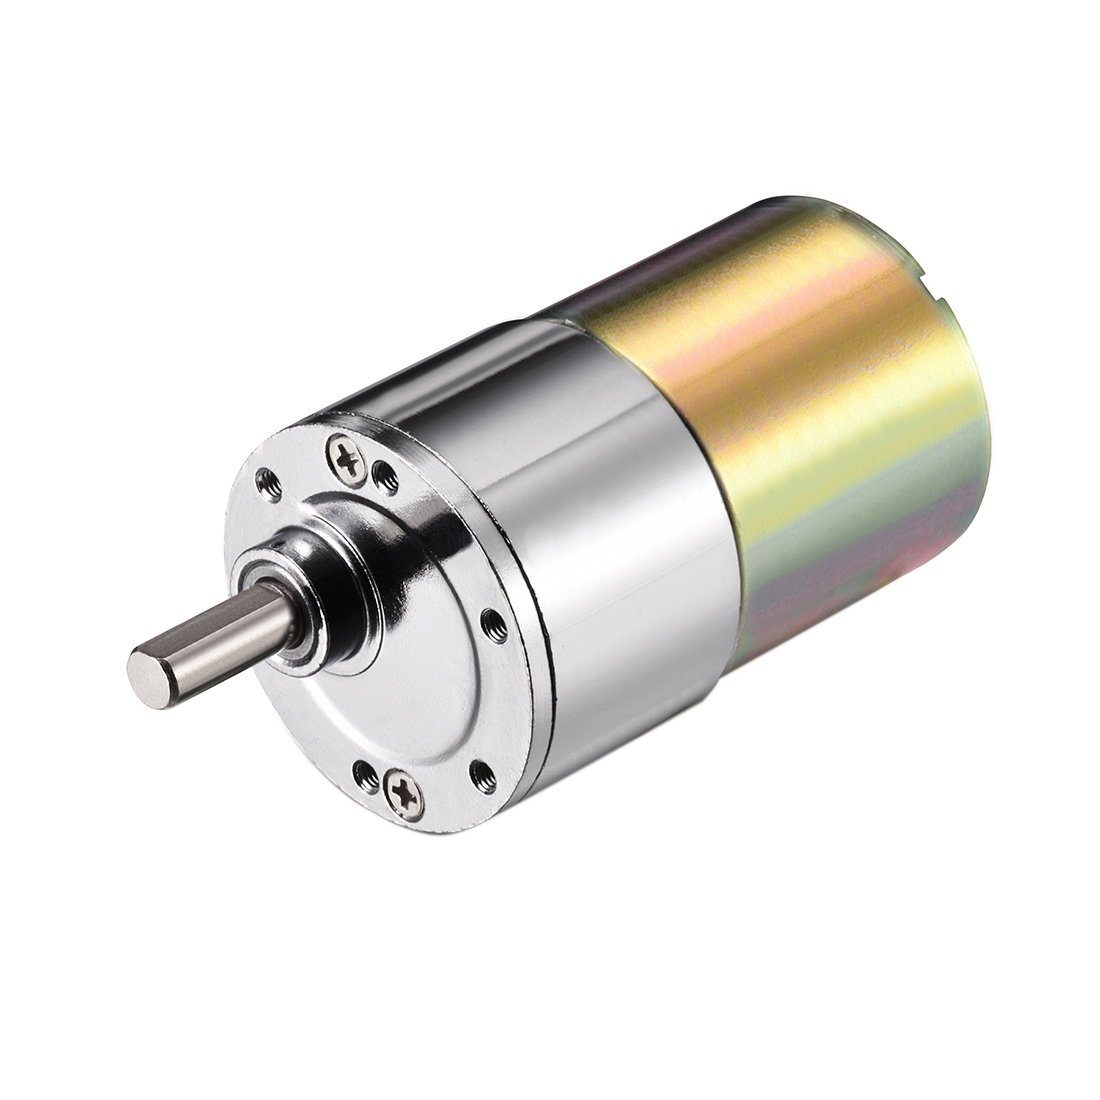 DC 24V 500RPM Micro Gear Box Motor Speed Reduction Electric Gearbox Eccentric Output Shaft